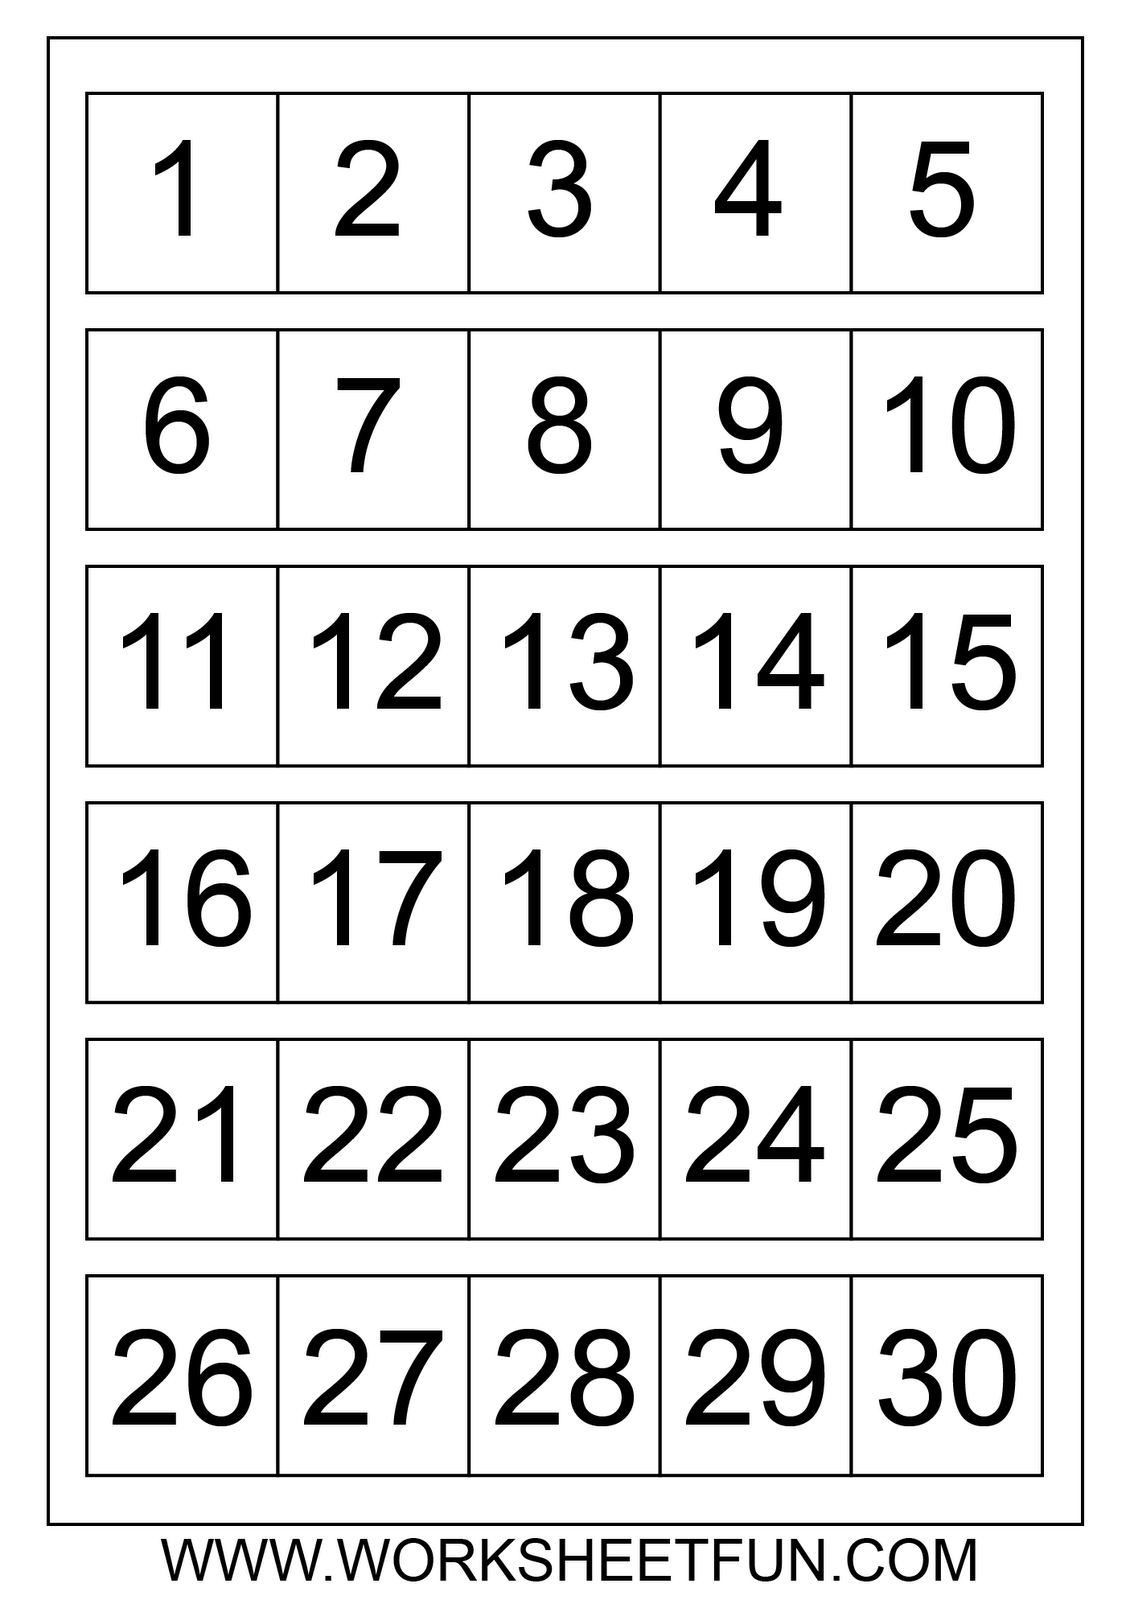 Large Printable Numbers 1 100 | To Dot With Numbers Printable - Free Printable Number Flashcards 1 30